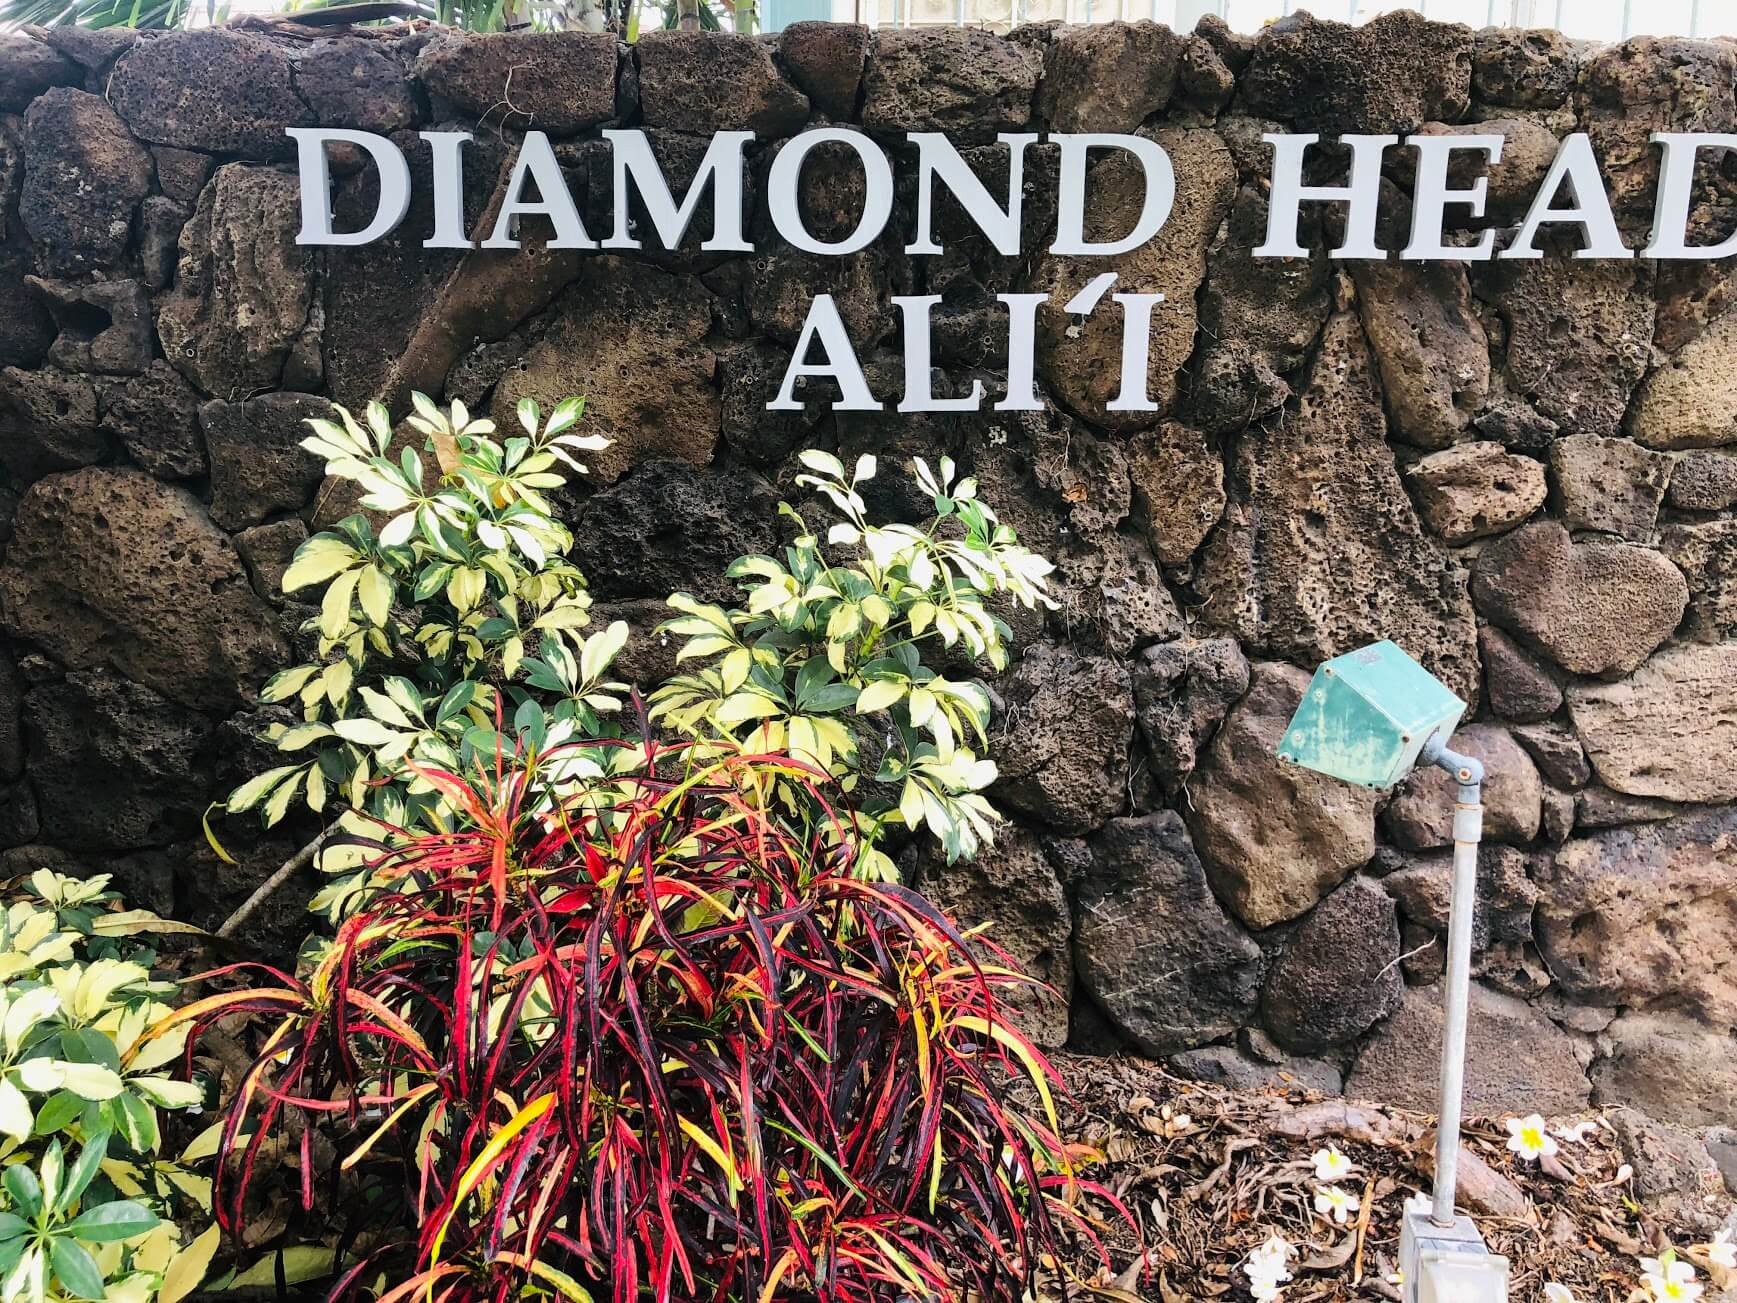 Diamond Head Aliiの看板